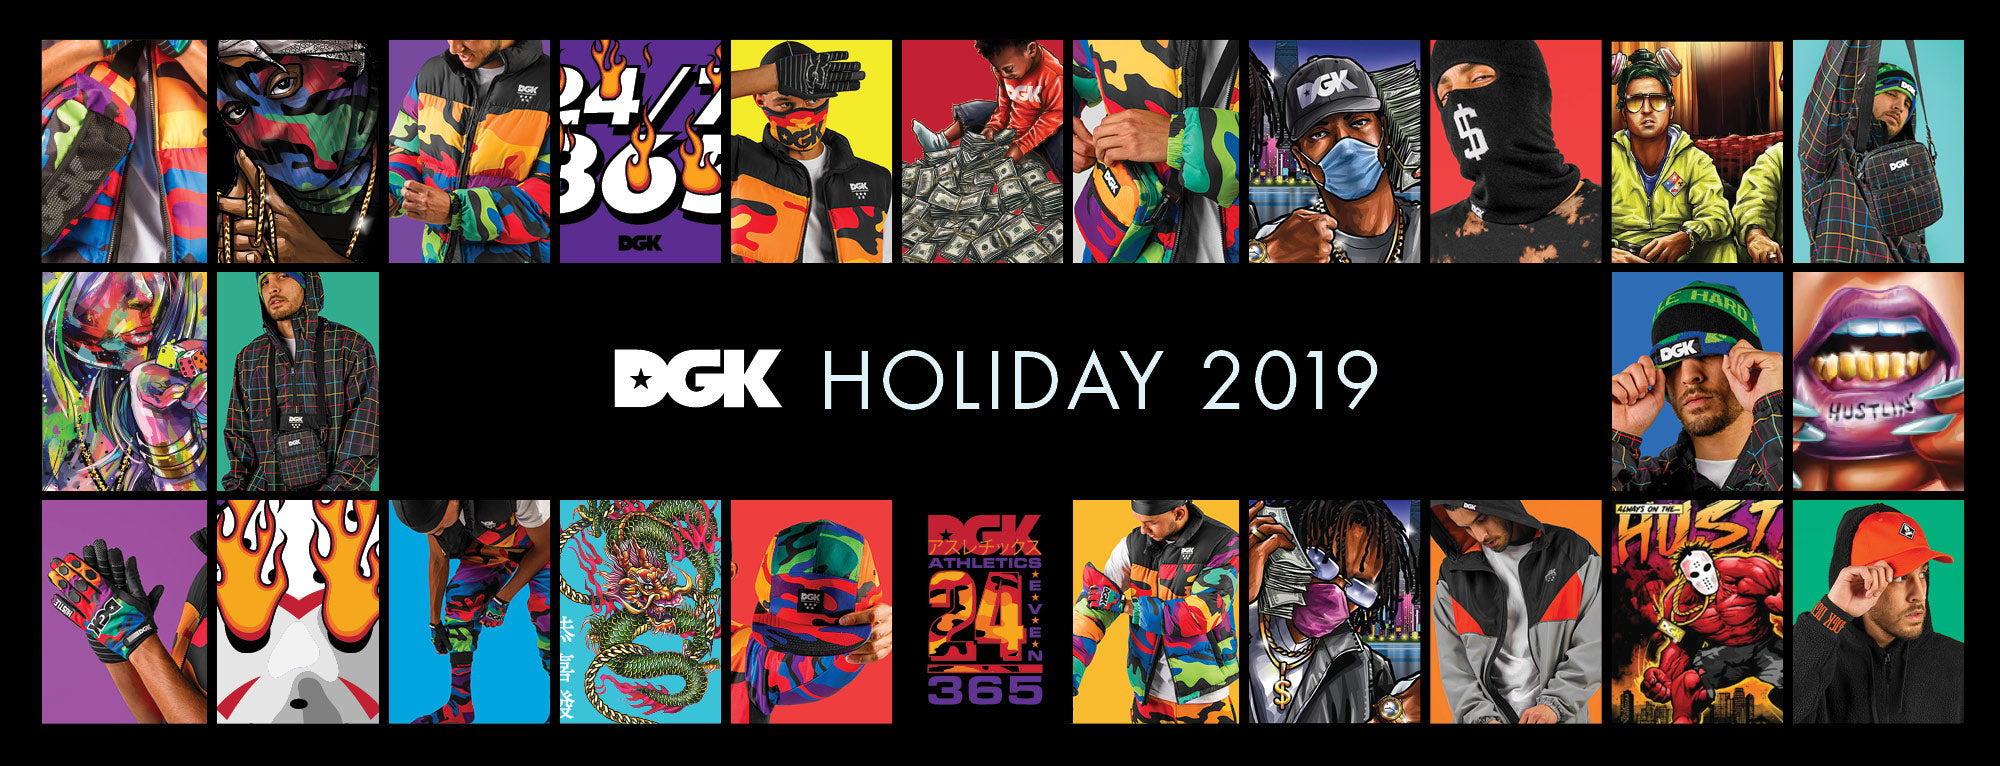 Dgk Nocturnal Collection Holiday 2019